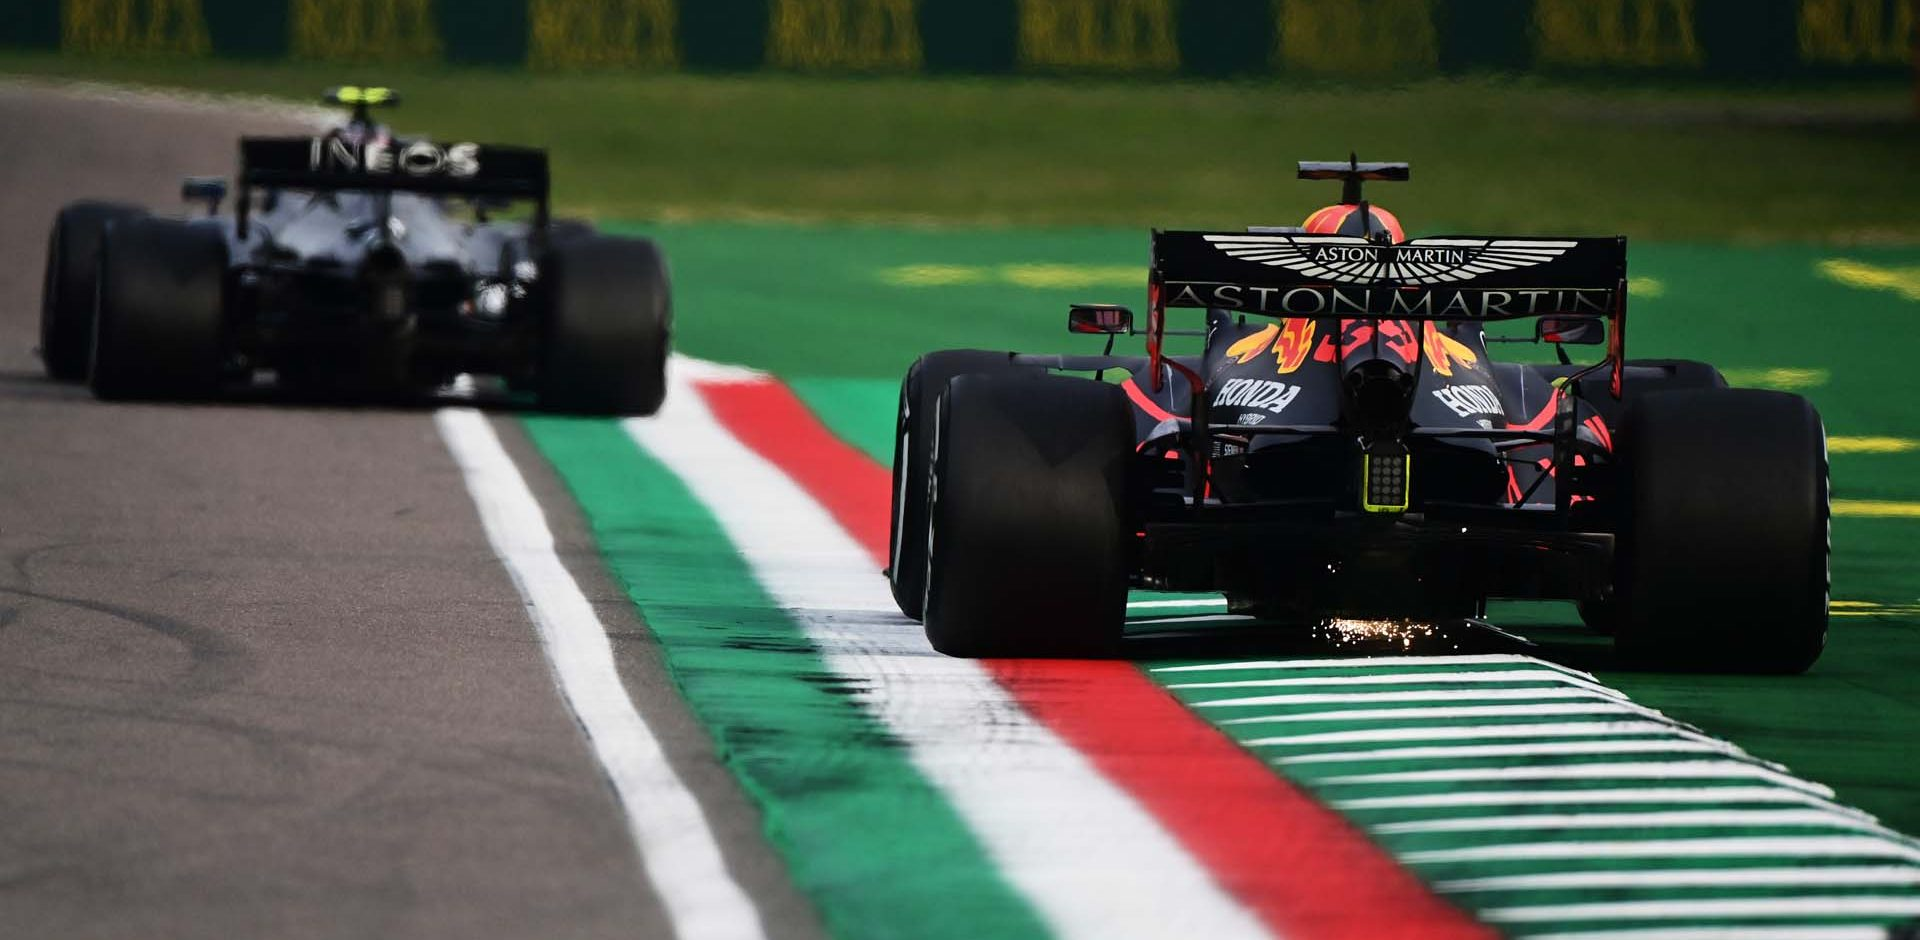 IMOLA, ITALY - NOVEMBER 01: Max Verstappen of the Netherlands driving the (33) Aston Martin Red Bull Racing RB16 on track during the F1 Grand Prix of Emilia Romagna at Autodromo Enzo e Dino Ferrari on November 01, 2020 in Imola, Italy. (Photo by Miguel Medina - Pool/Getty Images)